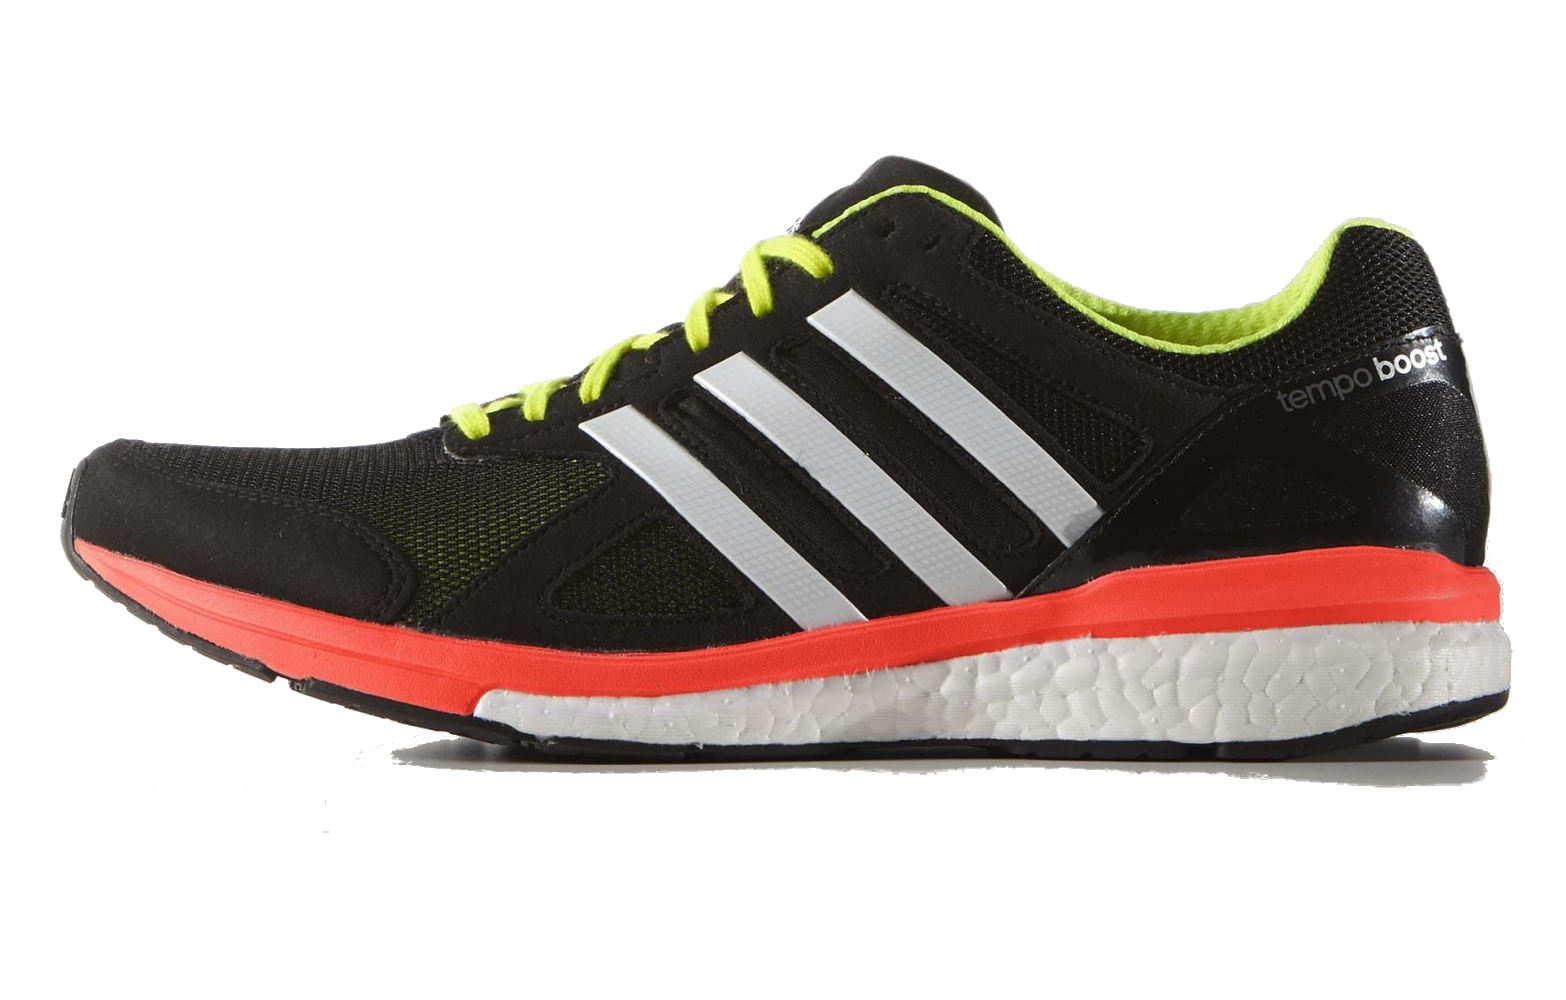 8e47f3b093c Adidas Adizero Tempo Boost 7 Mens Running Shoes - Black Orange ...